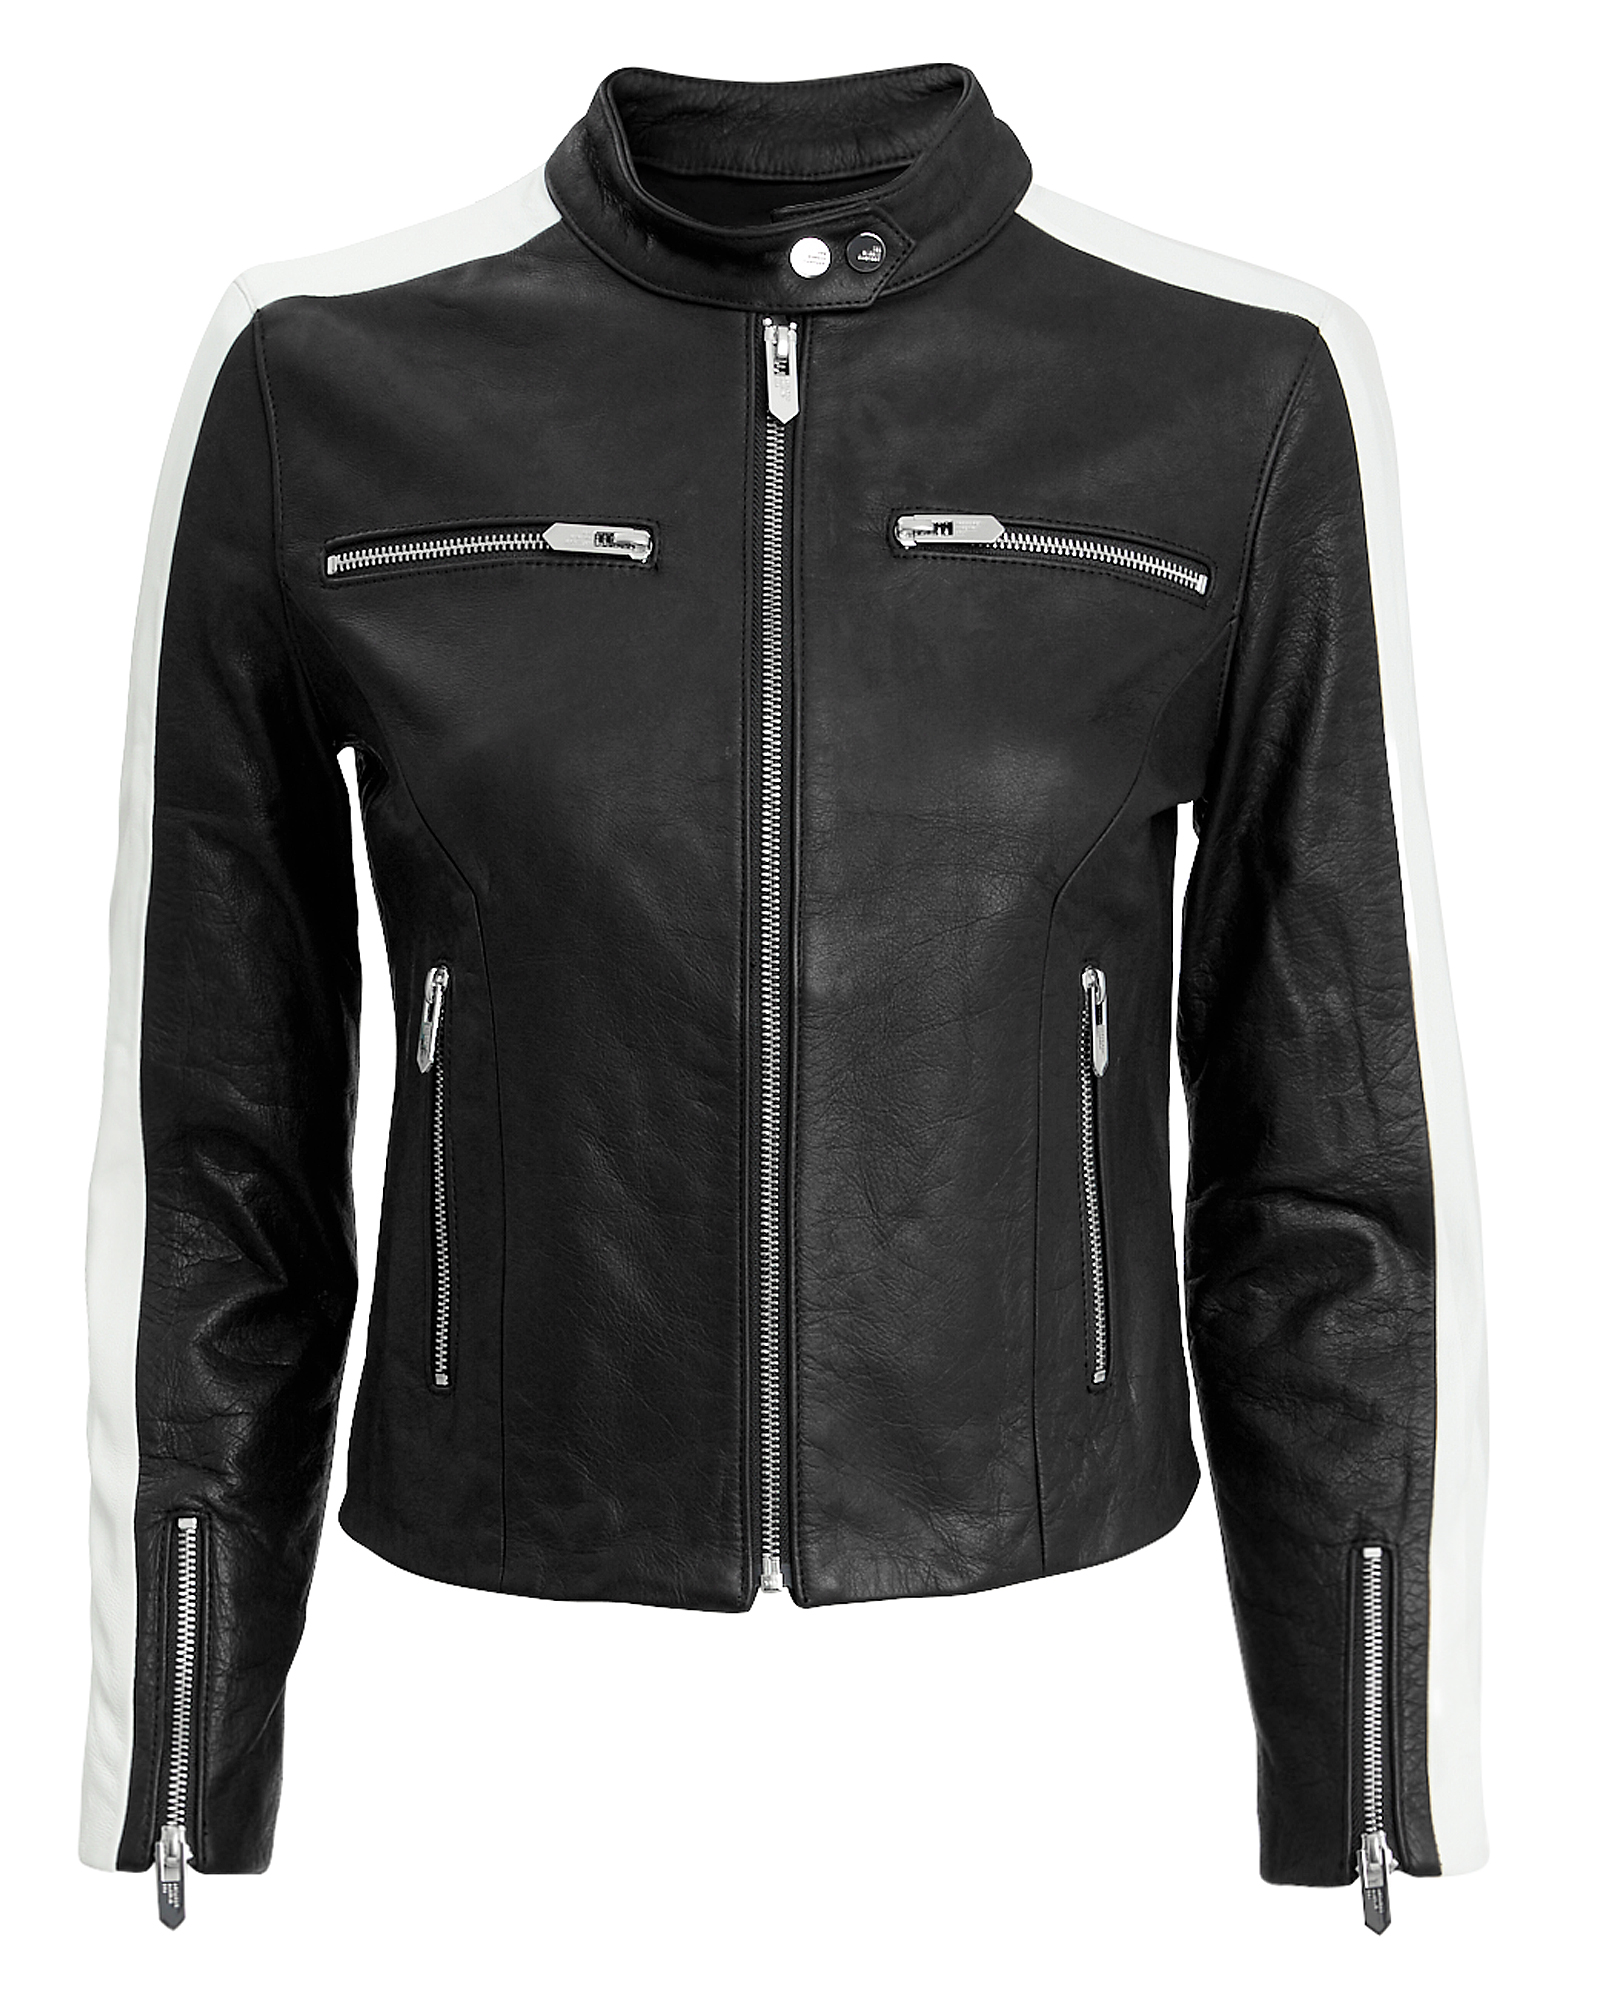 THE MIGHTY COMPANY Lucca Racer Jacket